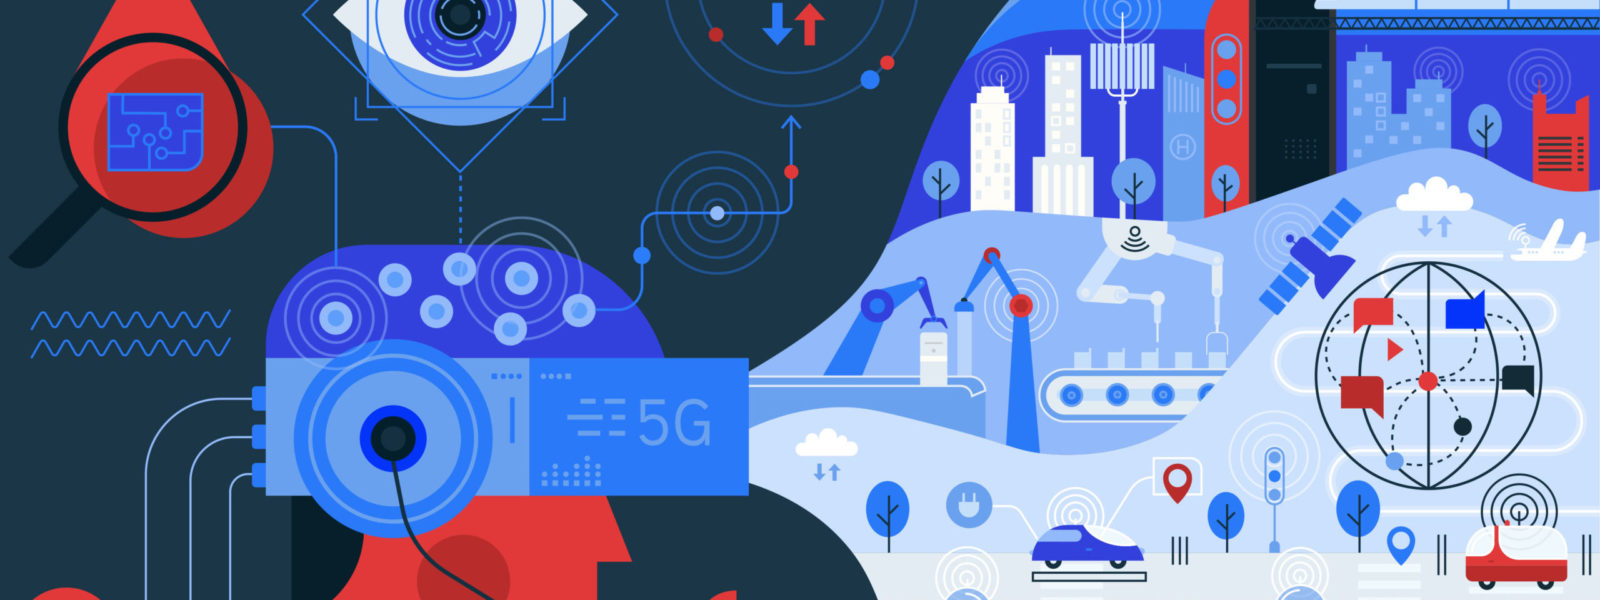 More Connected World5G